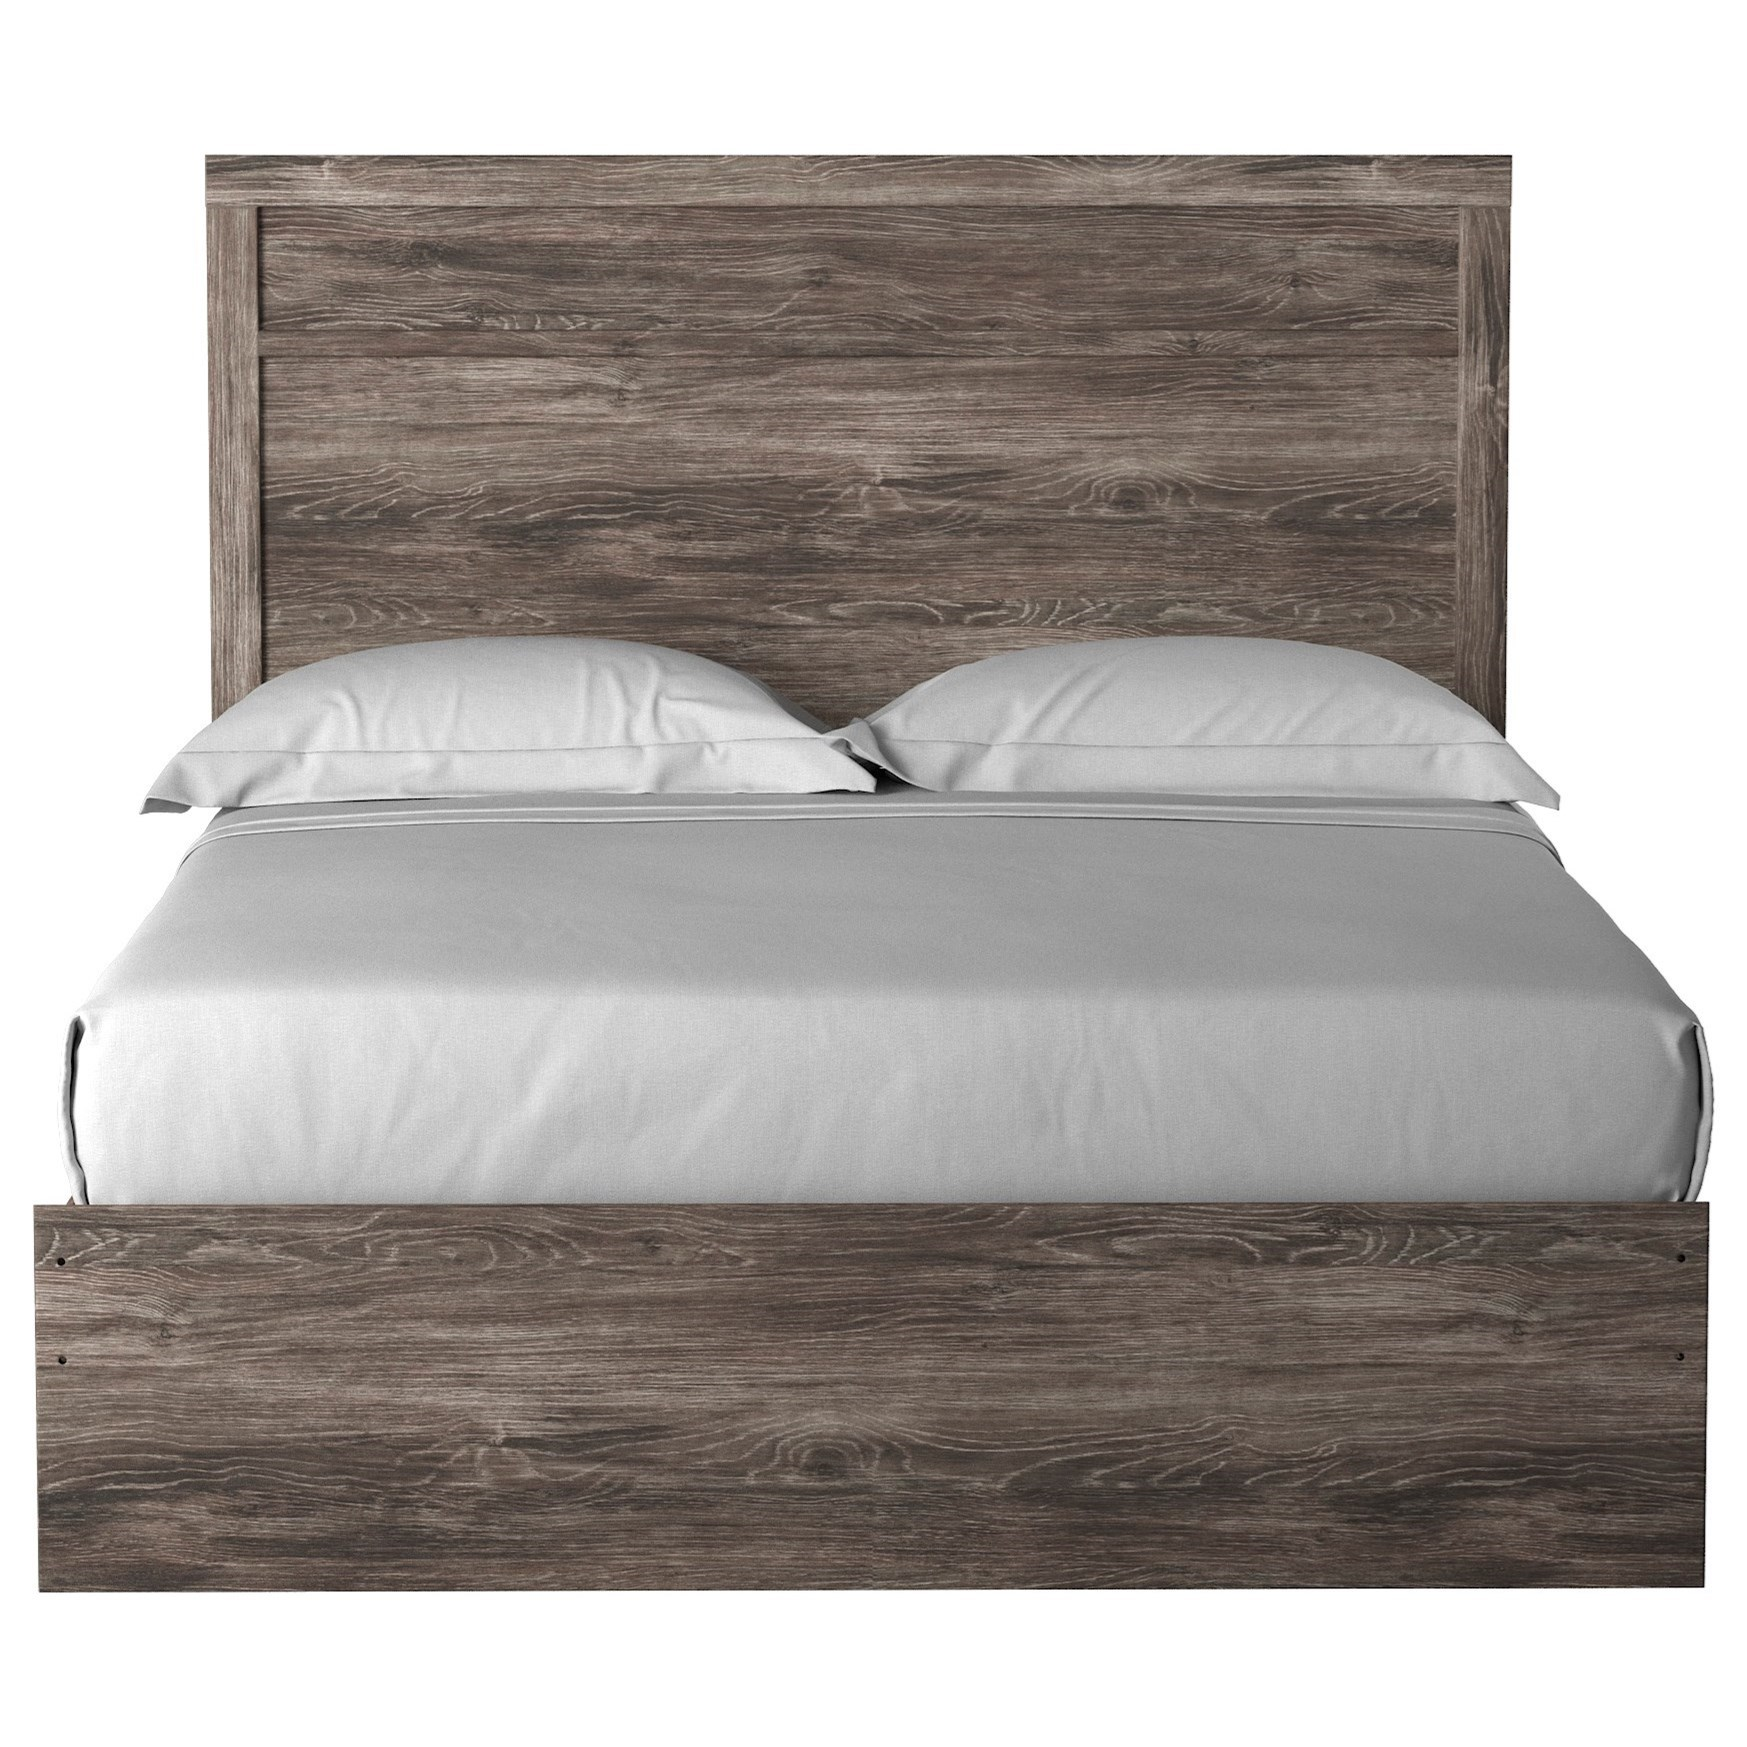 Ralinski Queen Panel Bed by Signature Design by Ashley at Zak's Warehouse Clearance Center